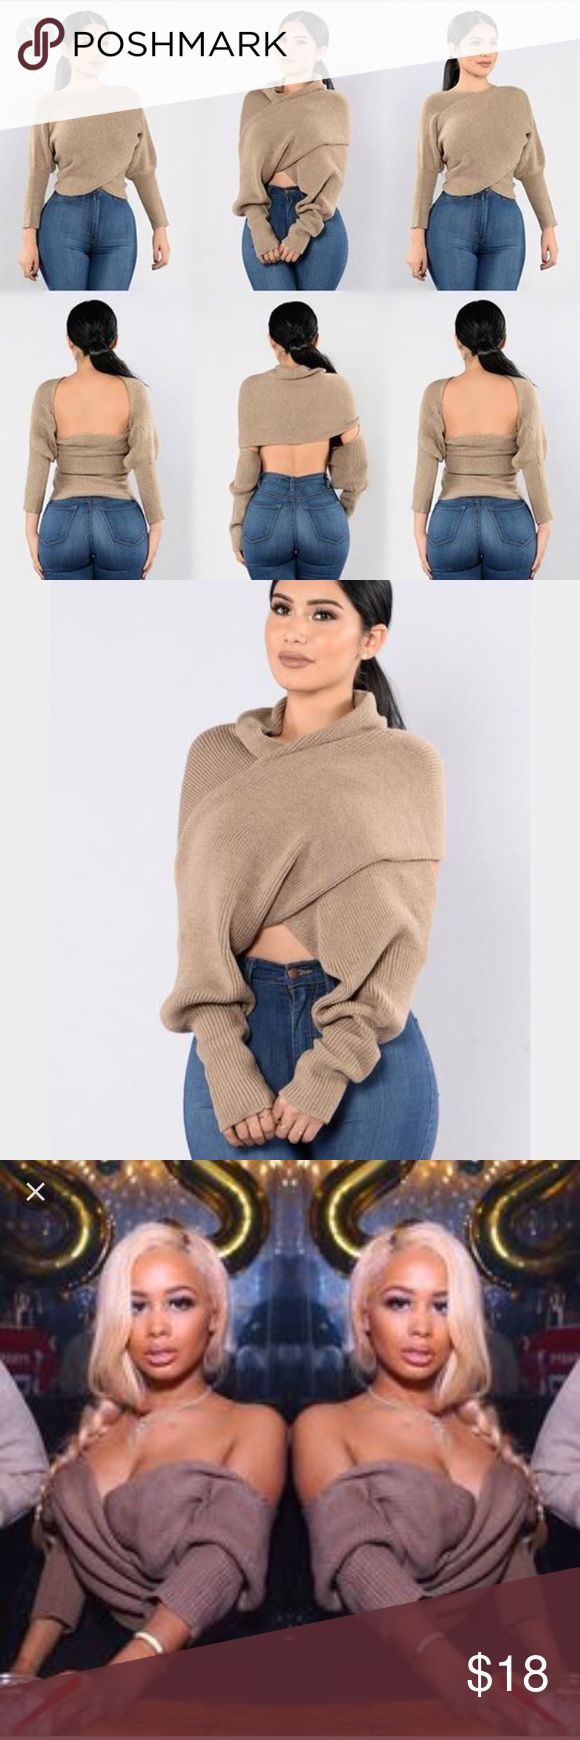 MULTI WEAR WRAP SWEATER you can wear this cross cross sweater in multiple fashionable ways! BRAND NEW WITH TAGS. Purchased from fashion Nova. Really stylish and versatile, Fashion Nova Sweaters